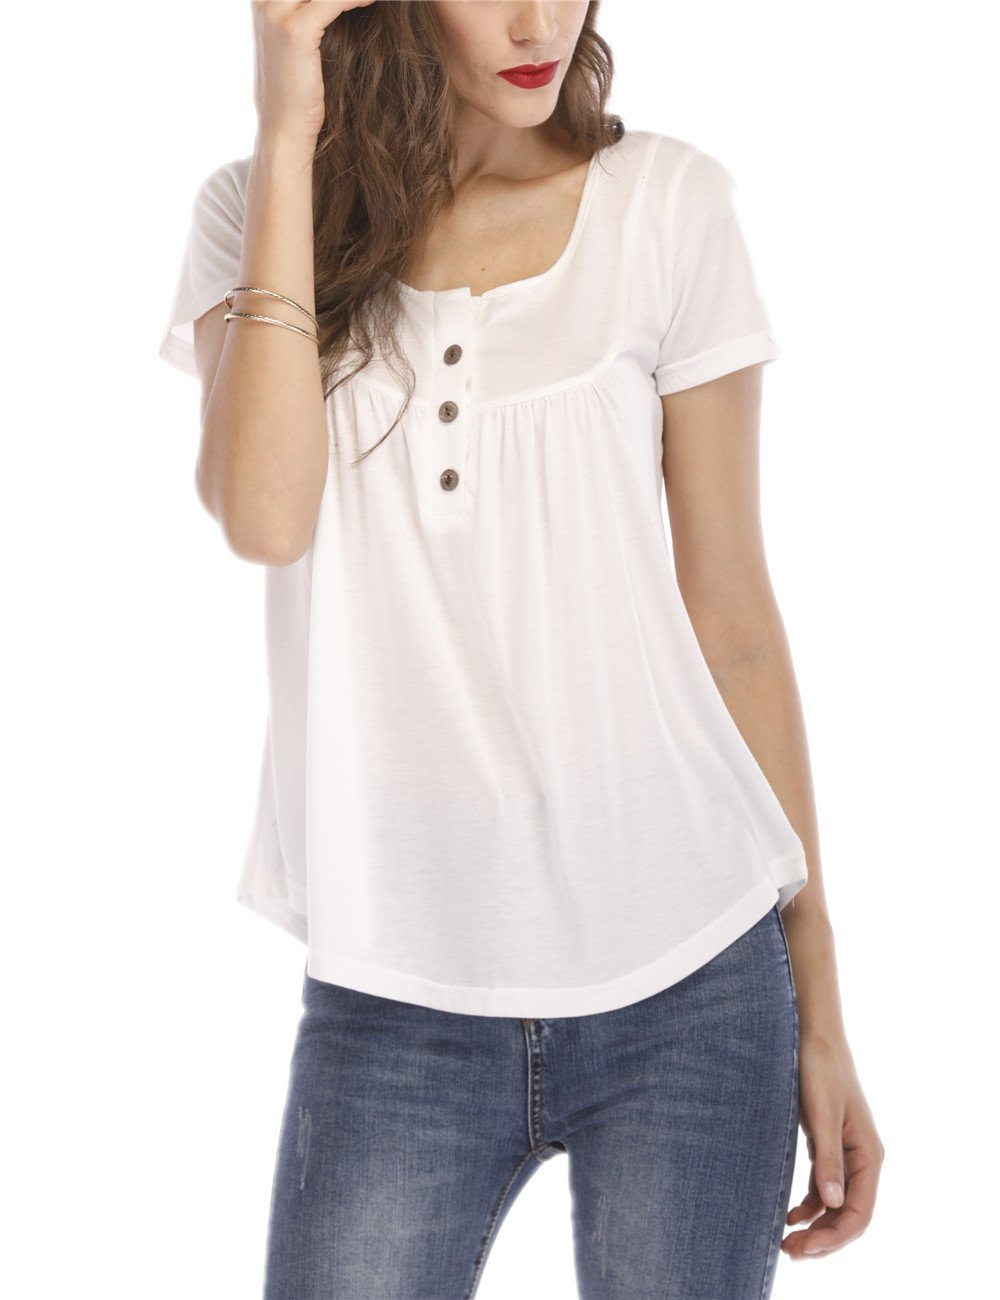 Ladyzone Womens Ruffle Button up Short Sleeve T-Shirt Solid V-Neck Casual Blouse Tunic Tops Solid Color Fit Flare (Small, White 2)